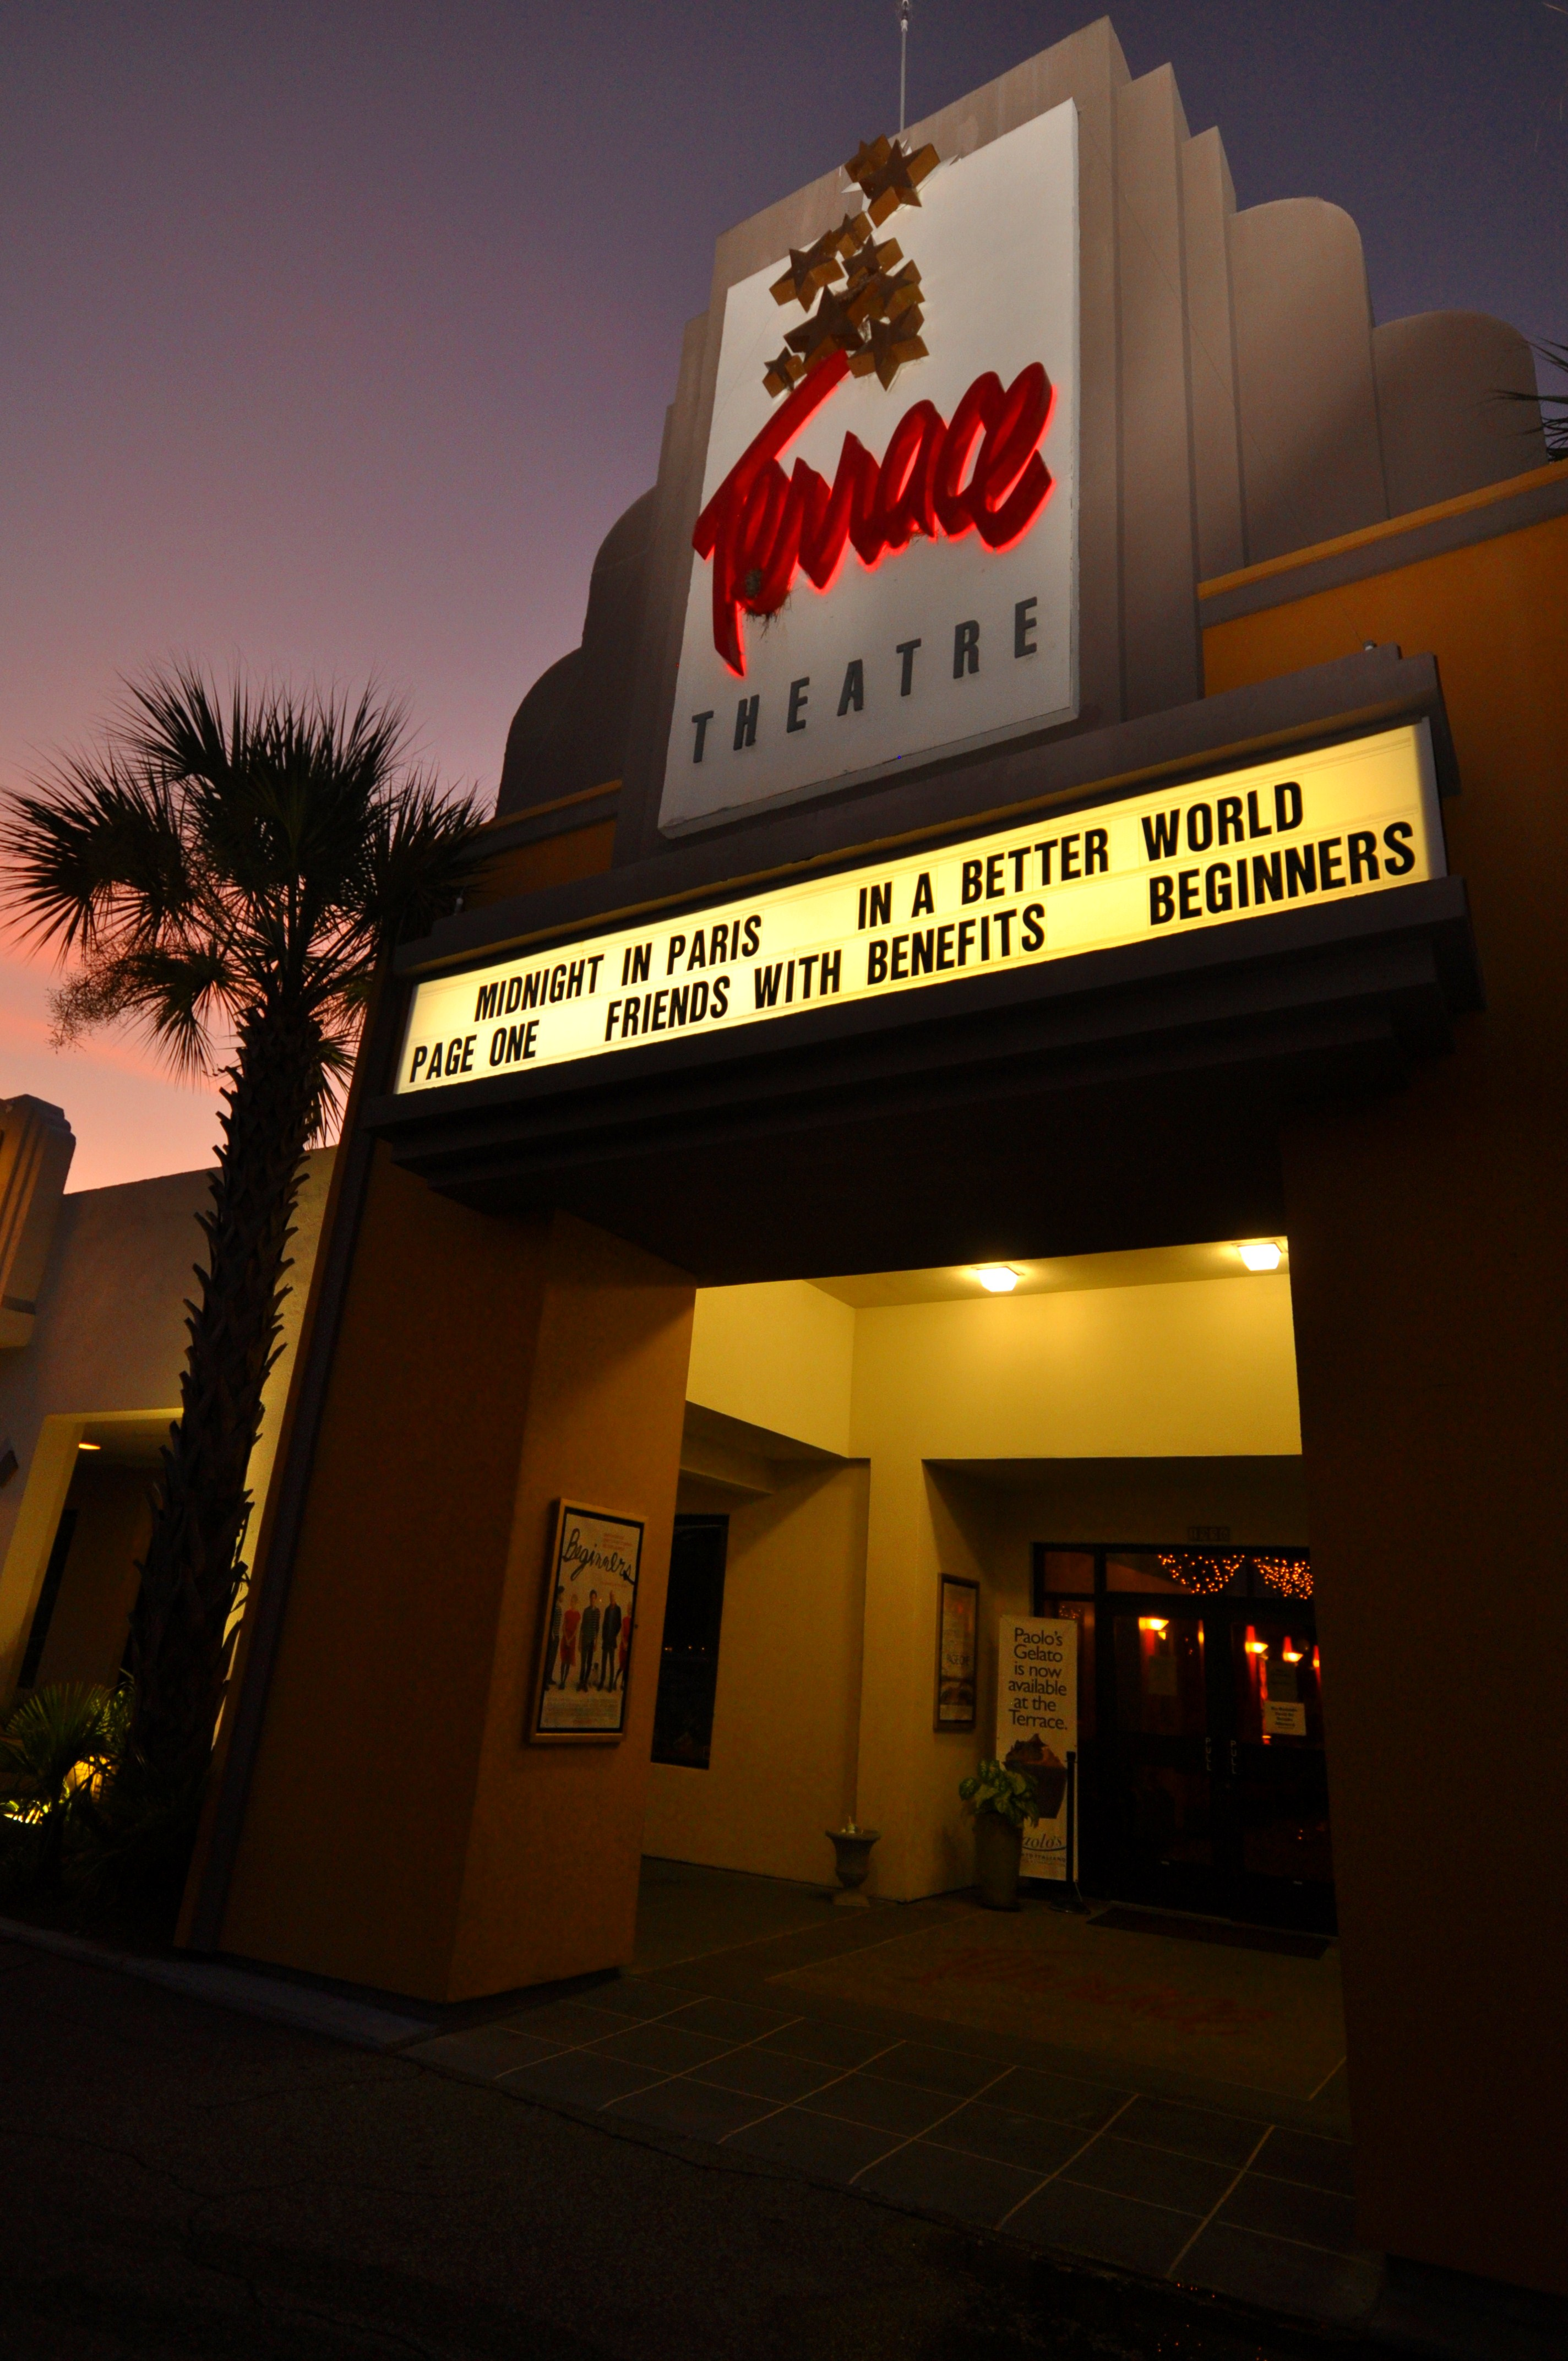 Enchanting movie enchanting theater the charleston porch for Terrace theater movies